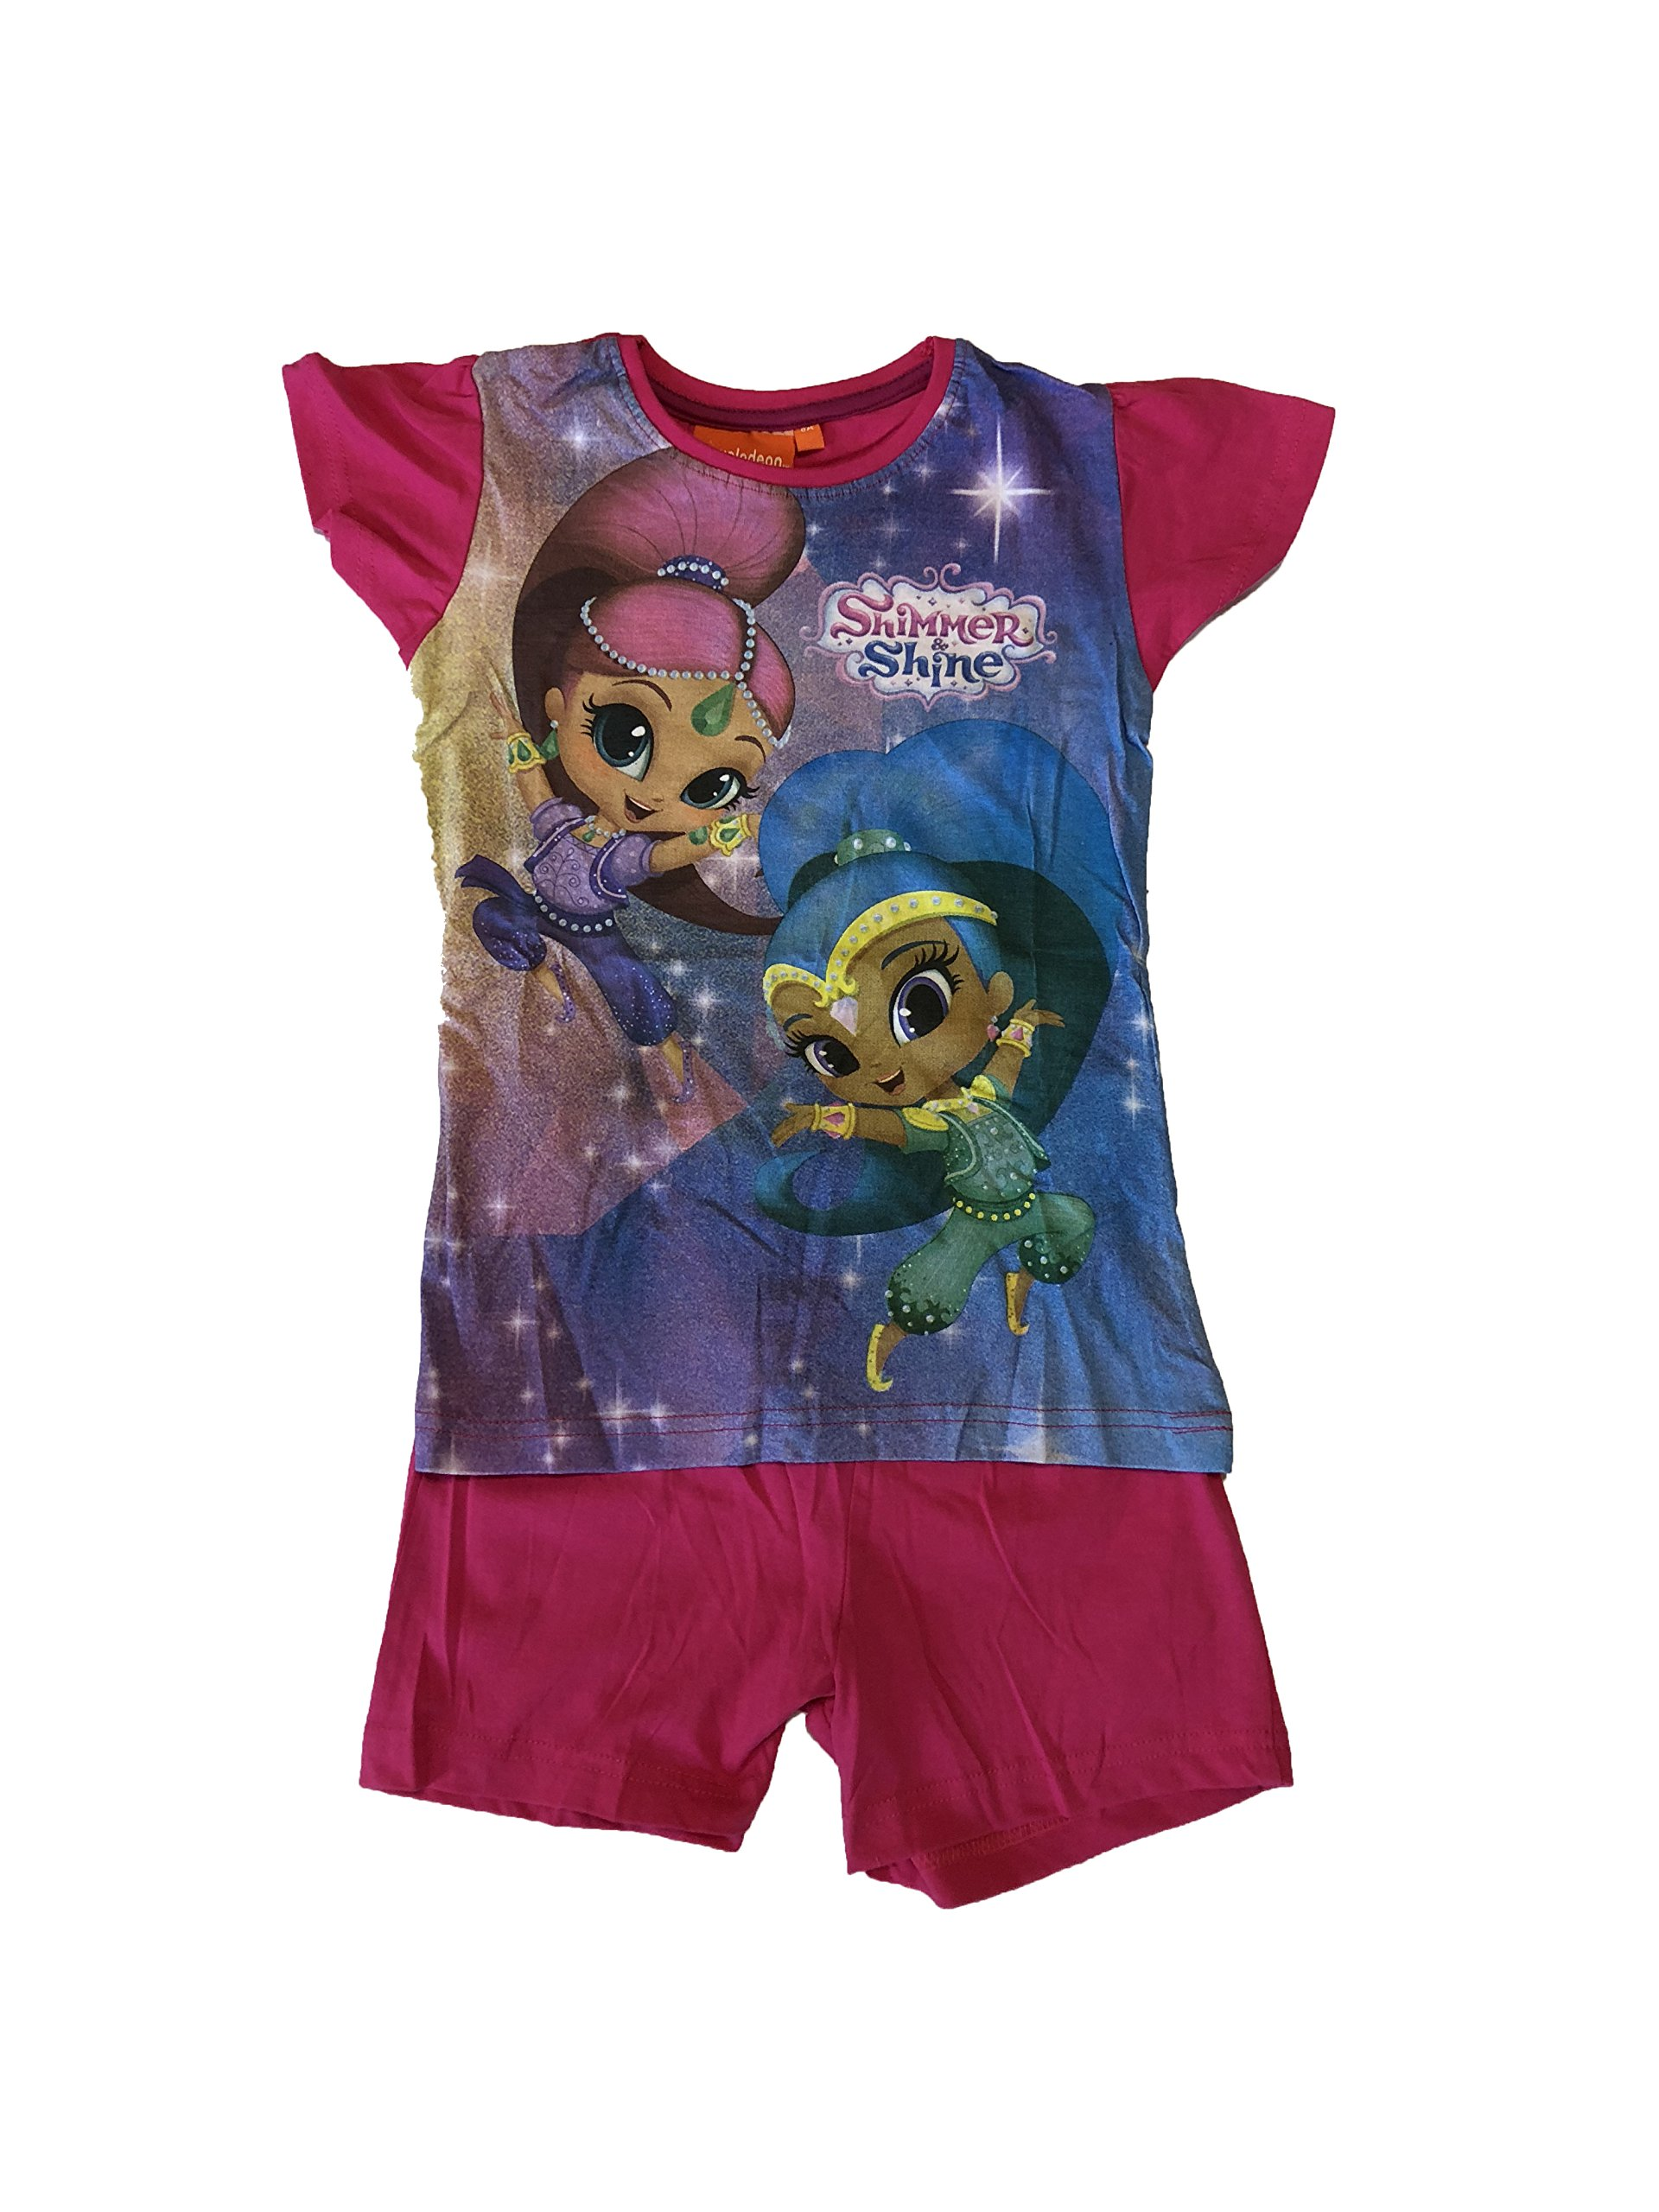 Shimmer and Shine Official Licensed Nickelodeon Girls Short Summer Pyjamas (Pink, 7 Years)